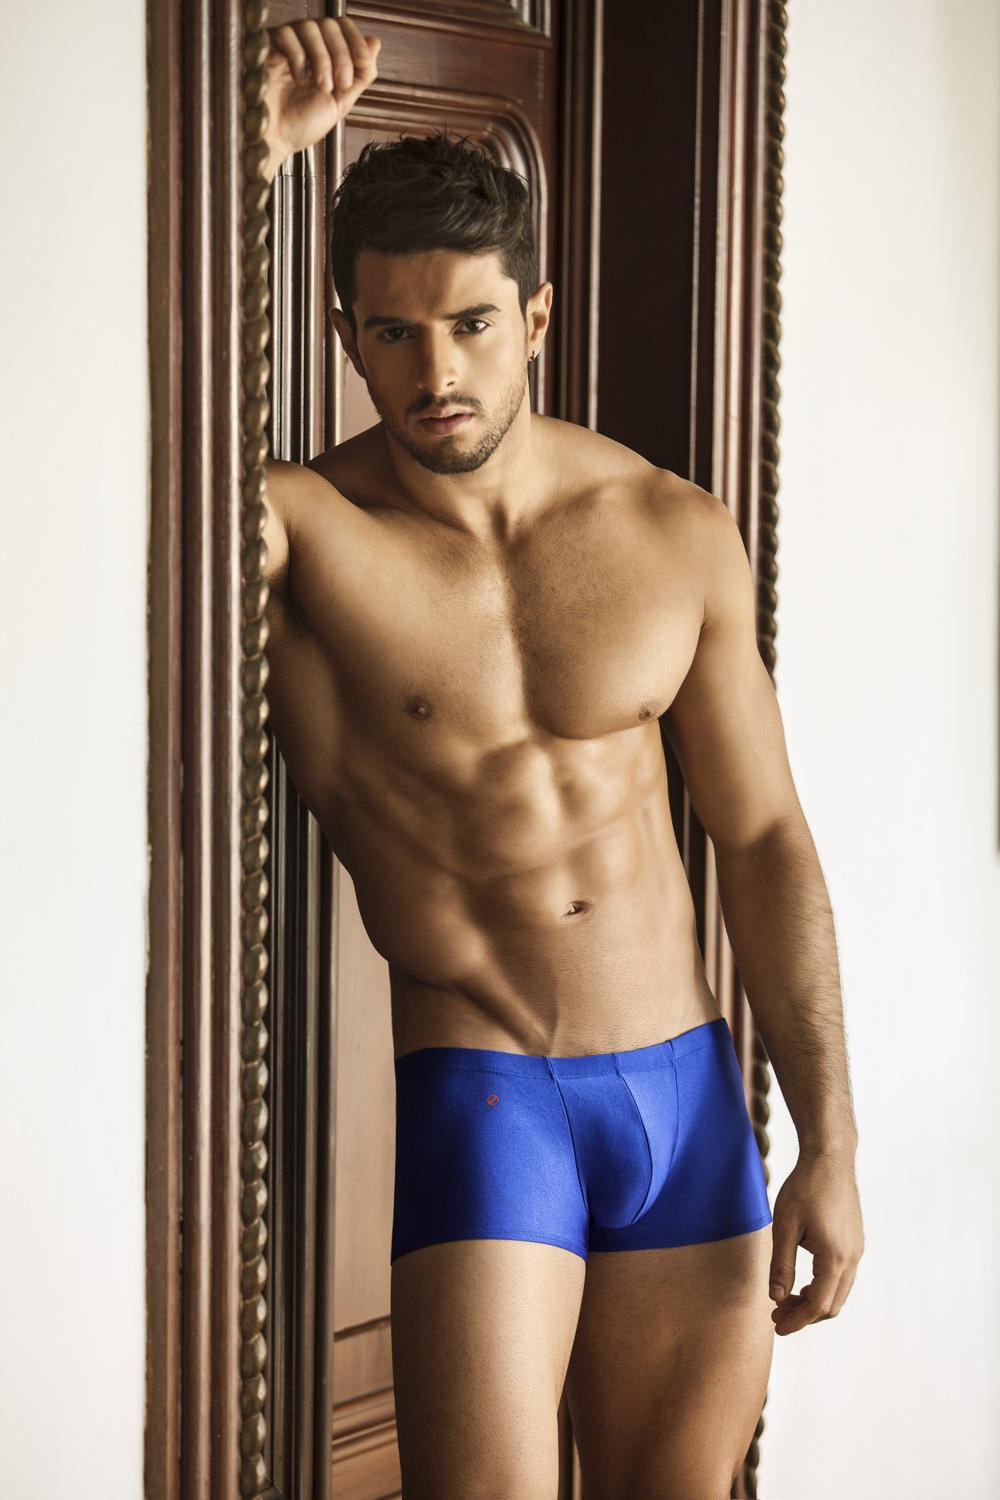 What Is The Sexiest Men's Underwear You've Ever Seen